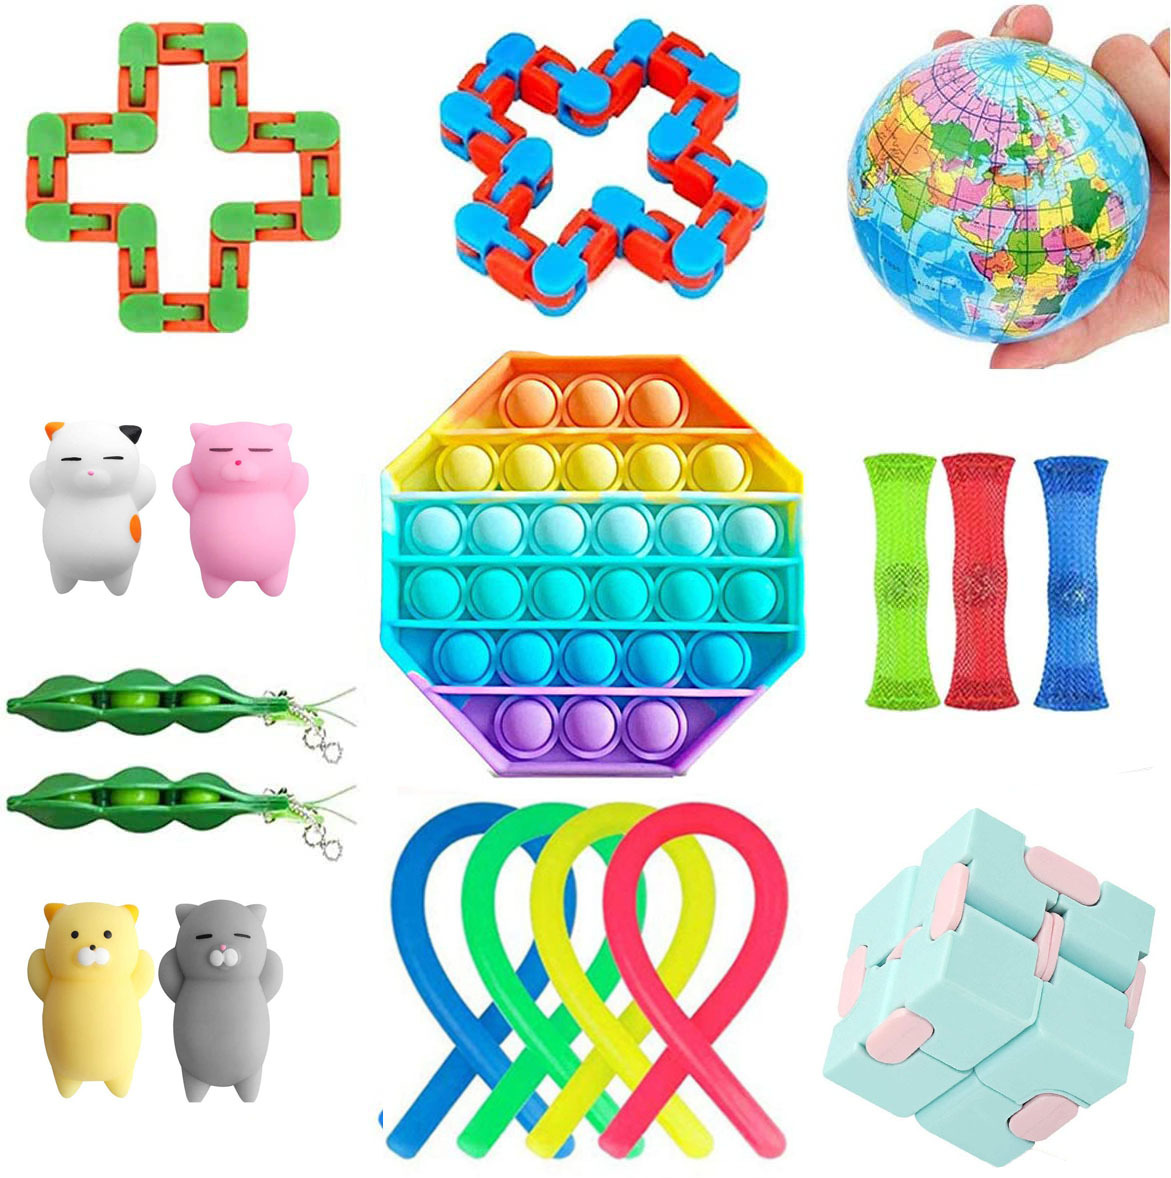 New Venting and Decompression Toy Combination A Set of Anti-push Bubble Pressure Fidget Toy Bag Childrens Educational Game Toy